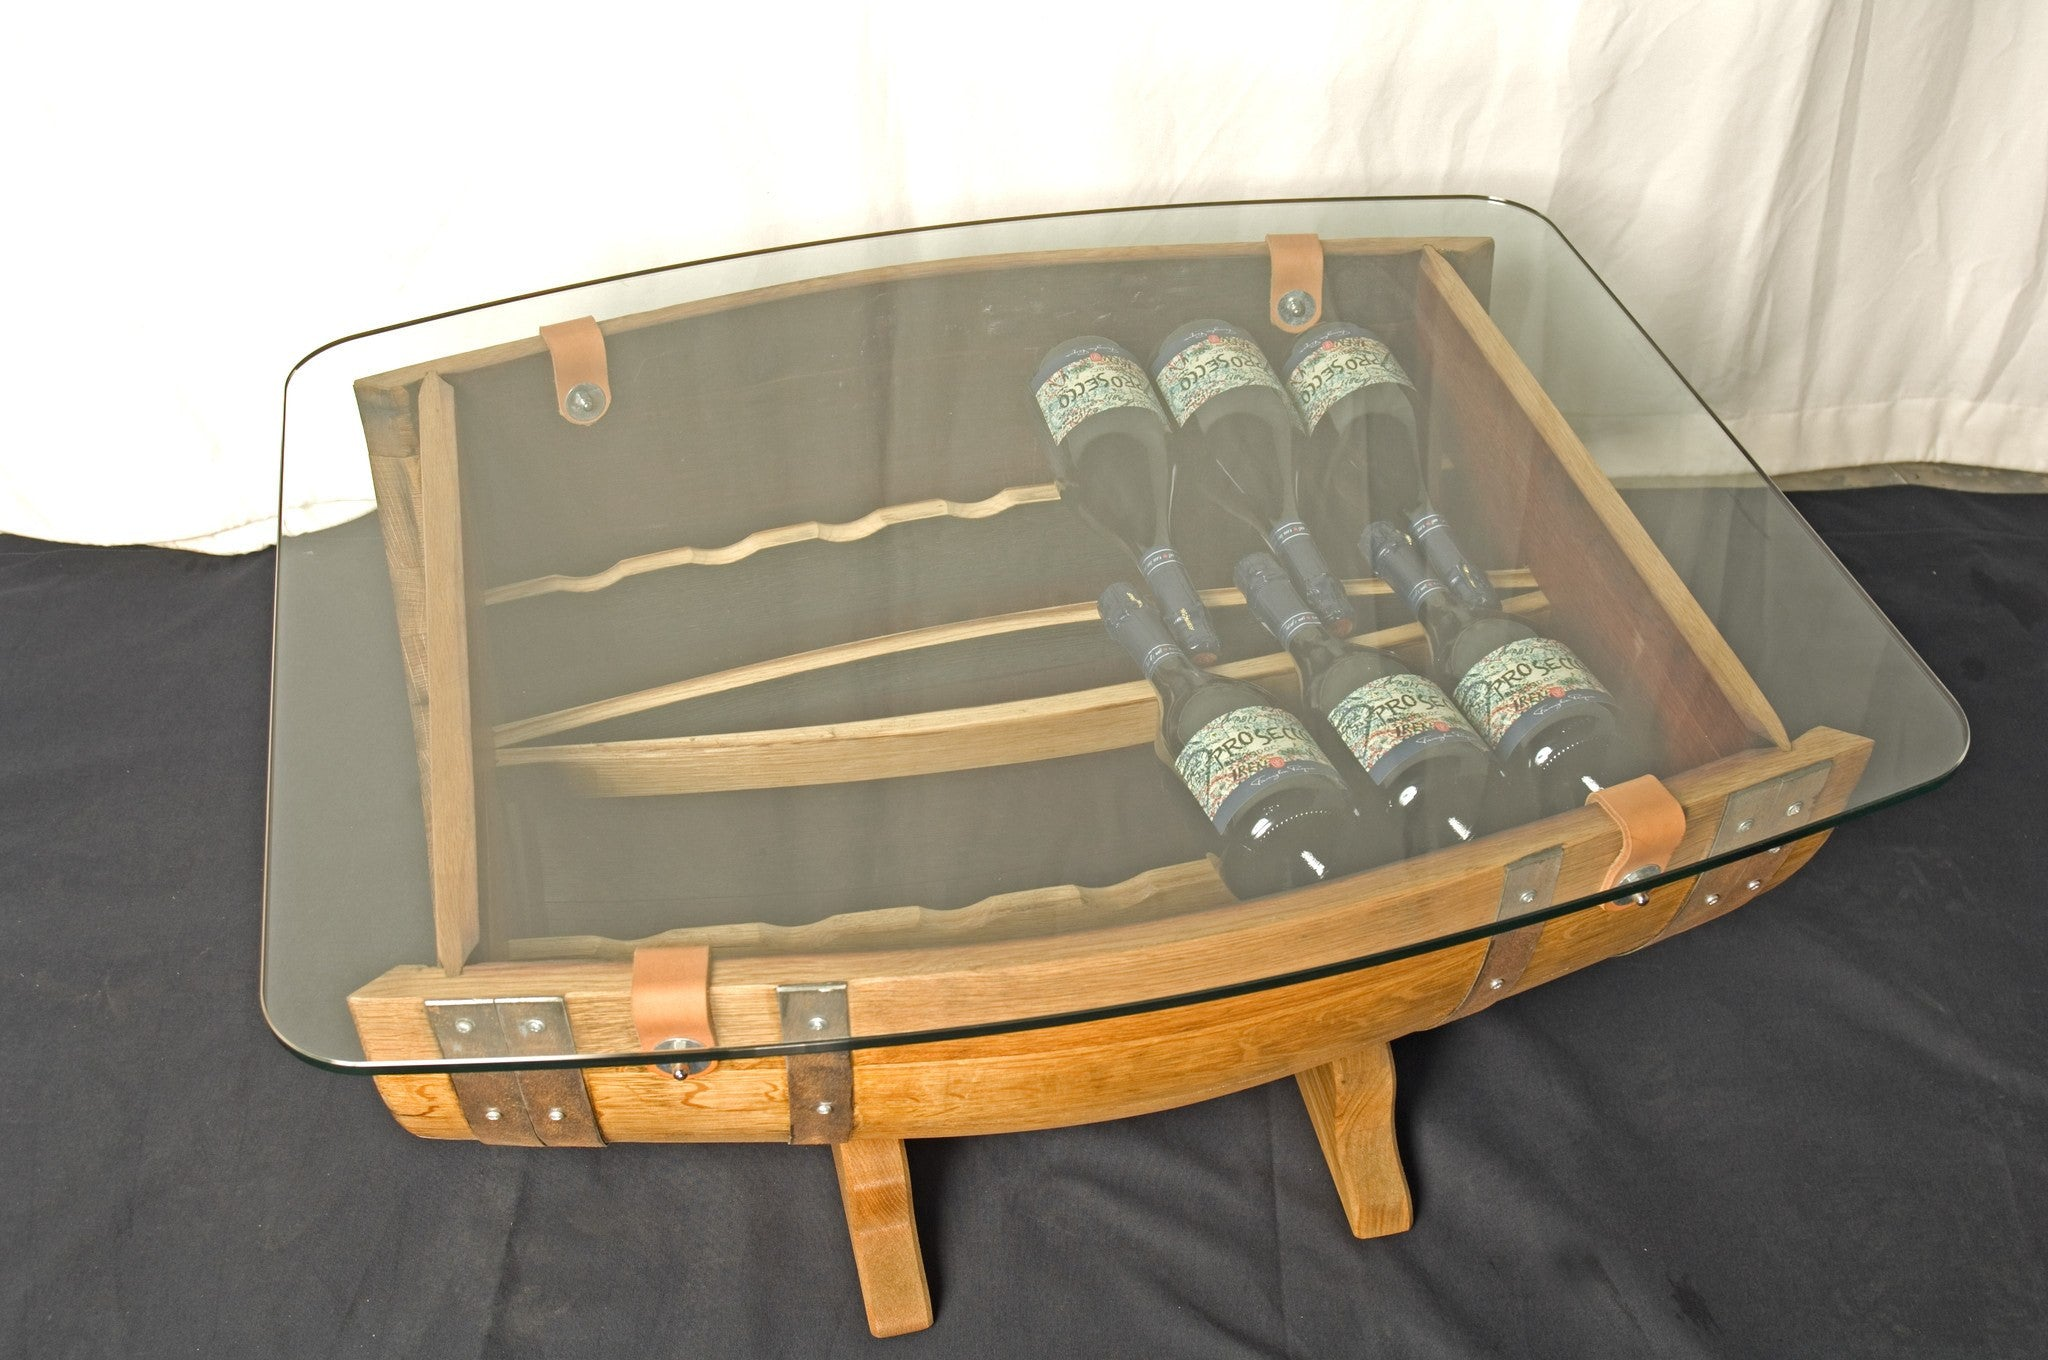 'The Griffiths'  ½ Barrel Coffee Table & Wine Rack (14 bottle) The Fine Wooden Article Co., Gloucestershire, UK